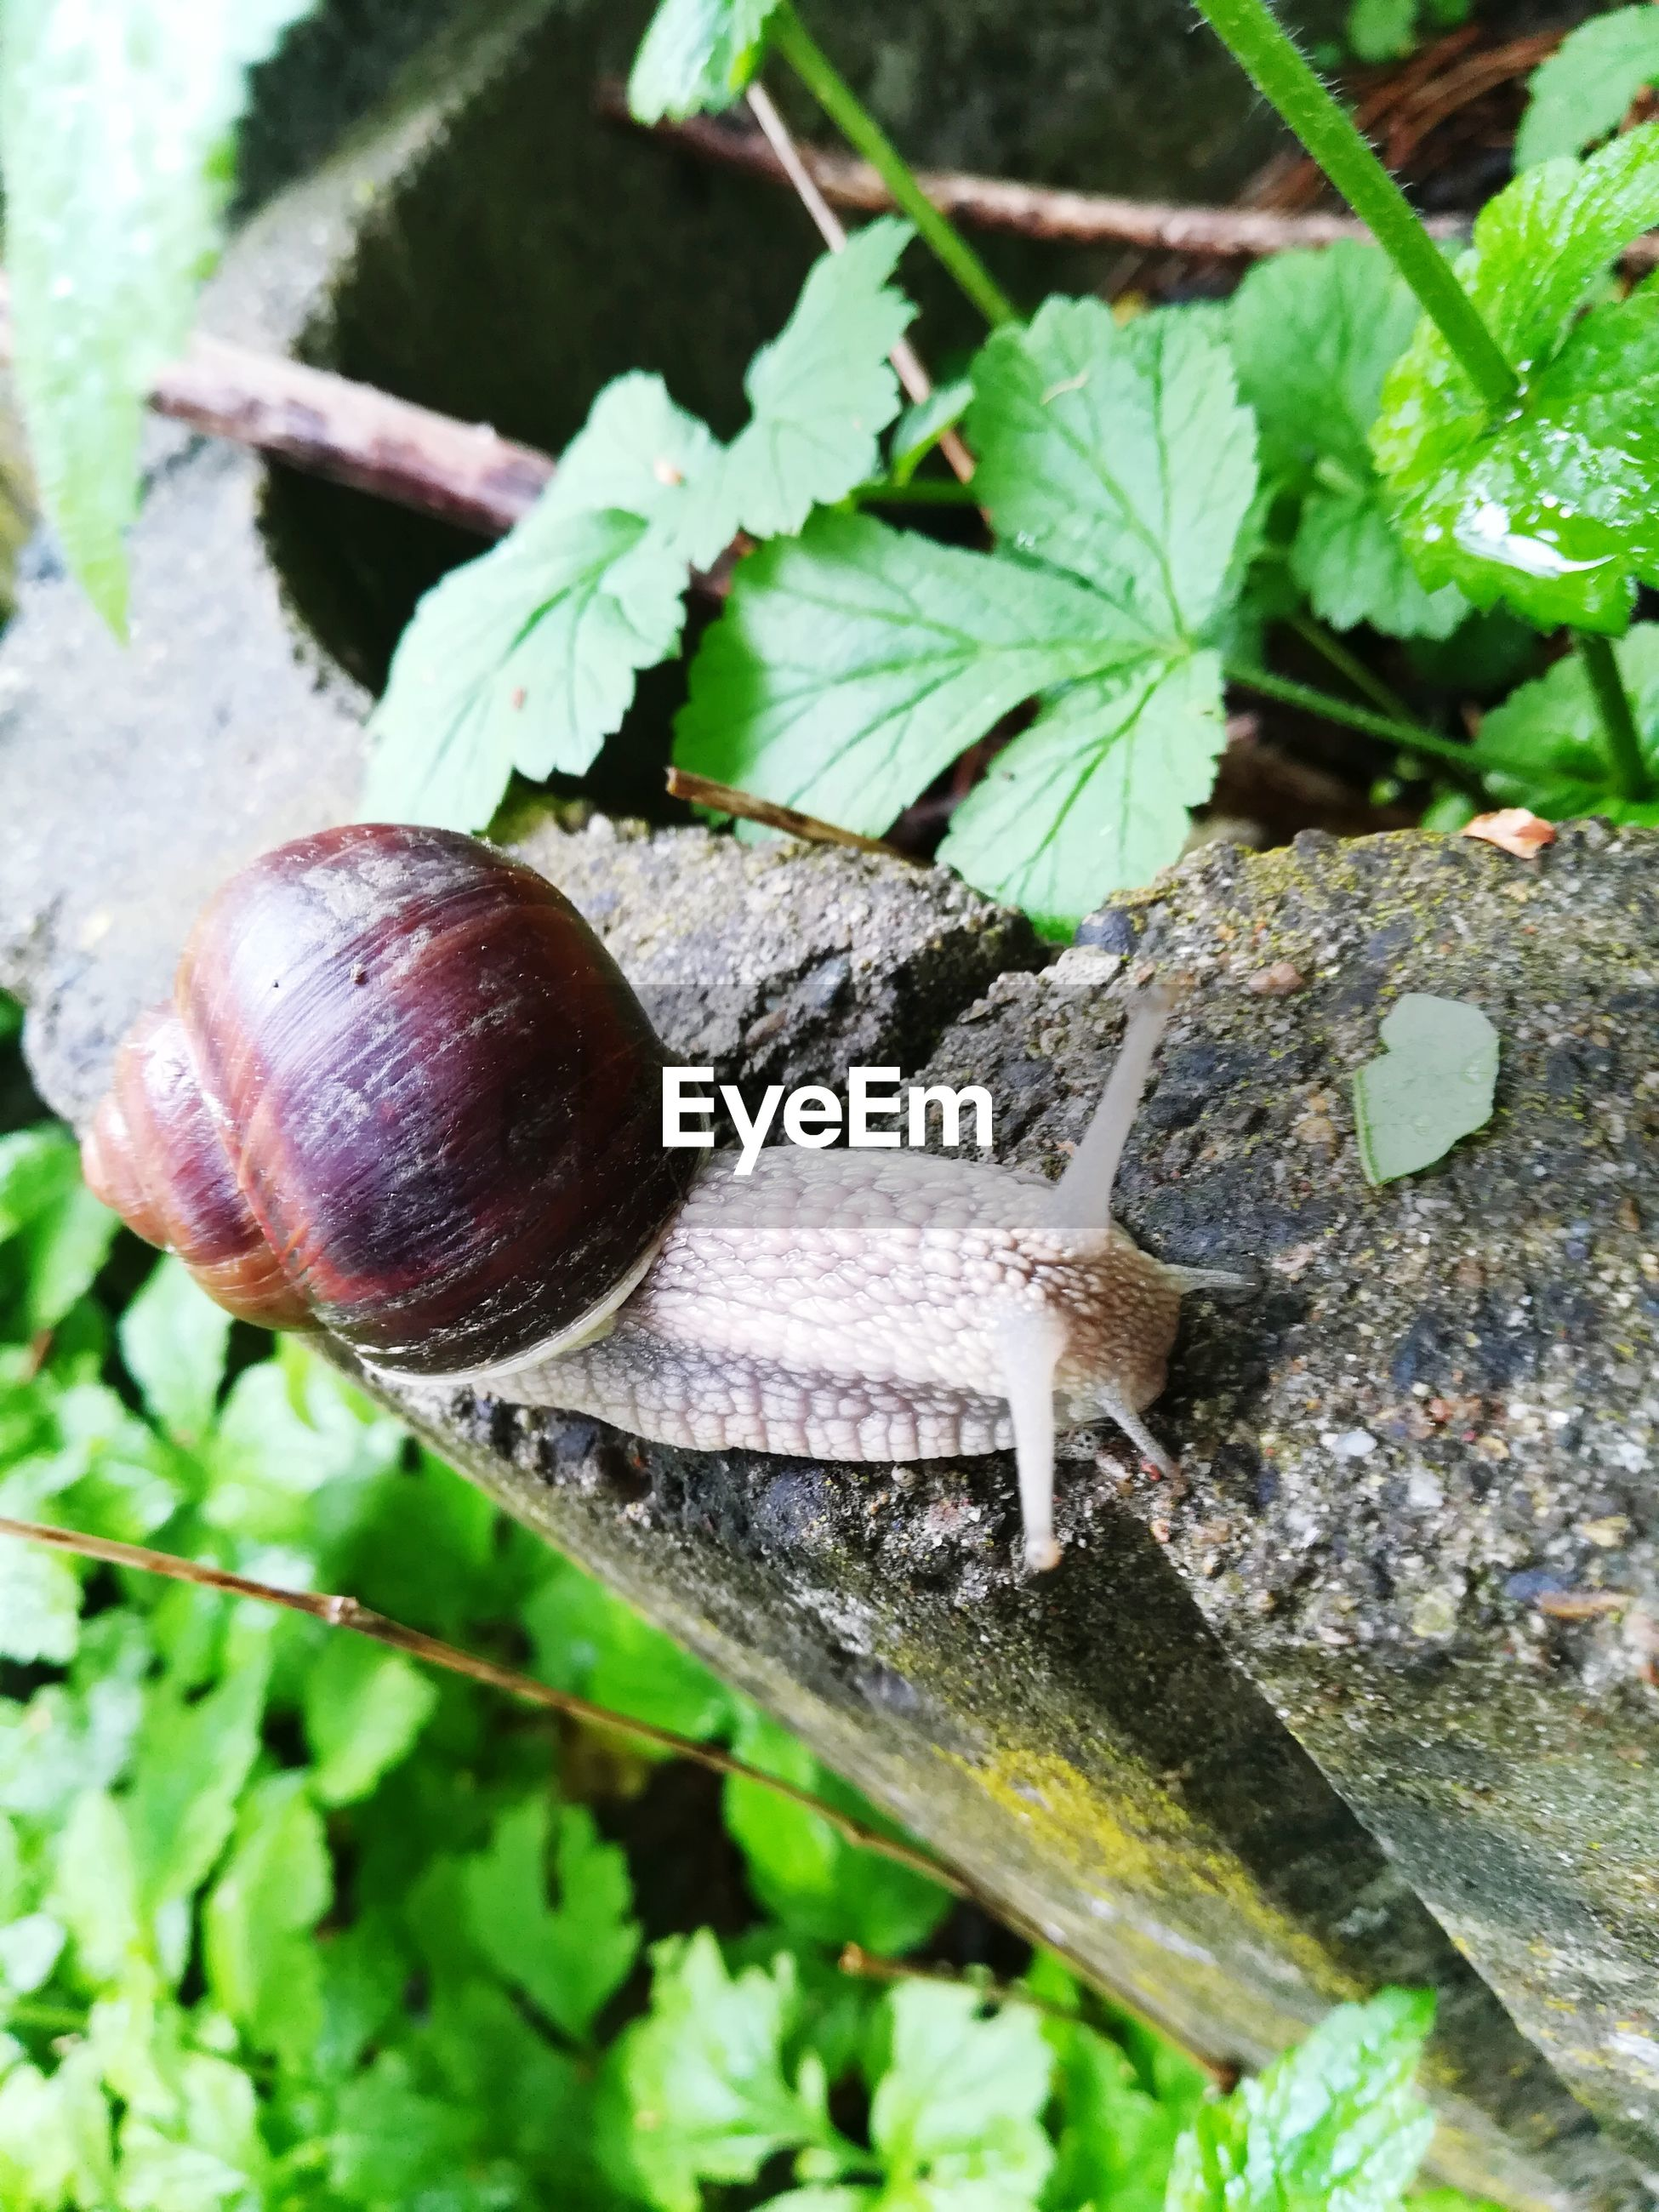 CLOSE-UP OF SNAIL ON A LEAF